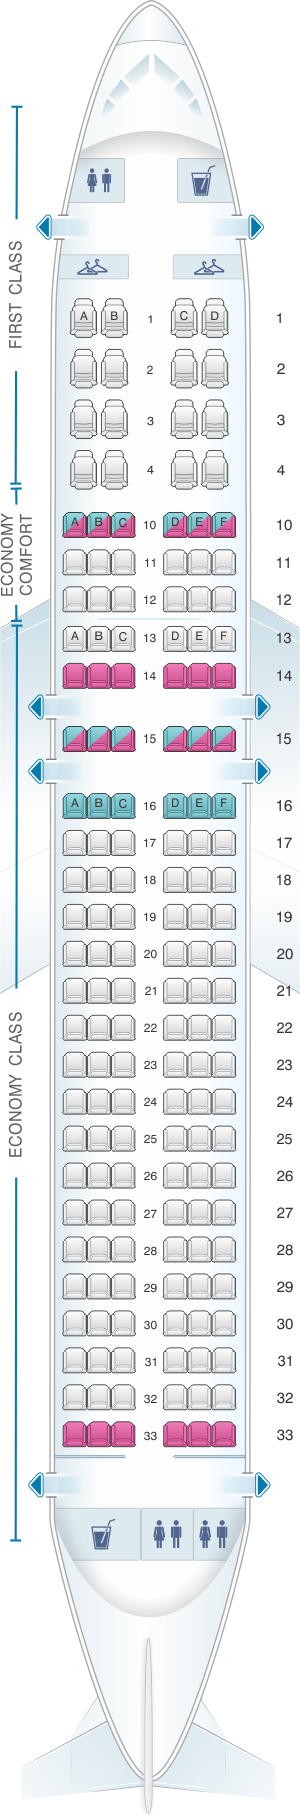 Seat map for Delta Air Lines Airbus A320 200 (32K)